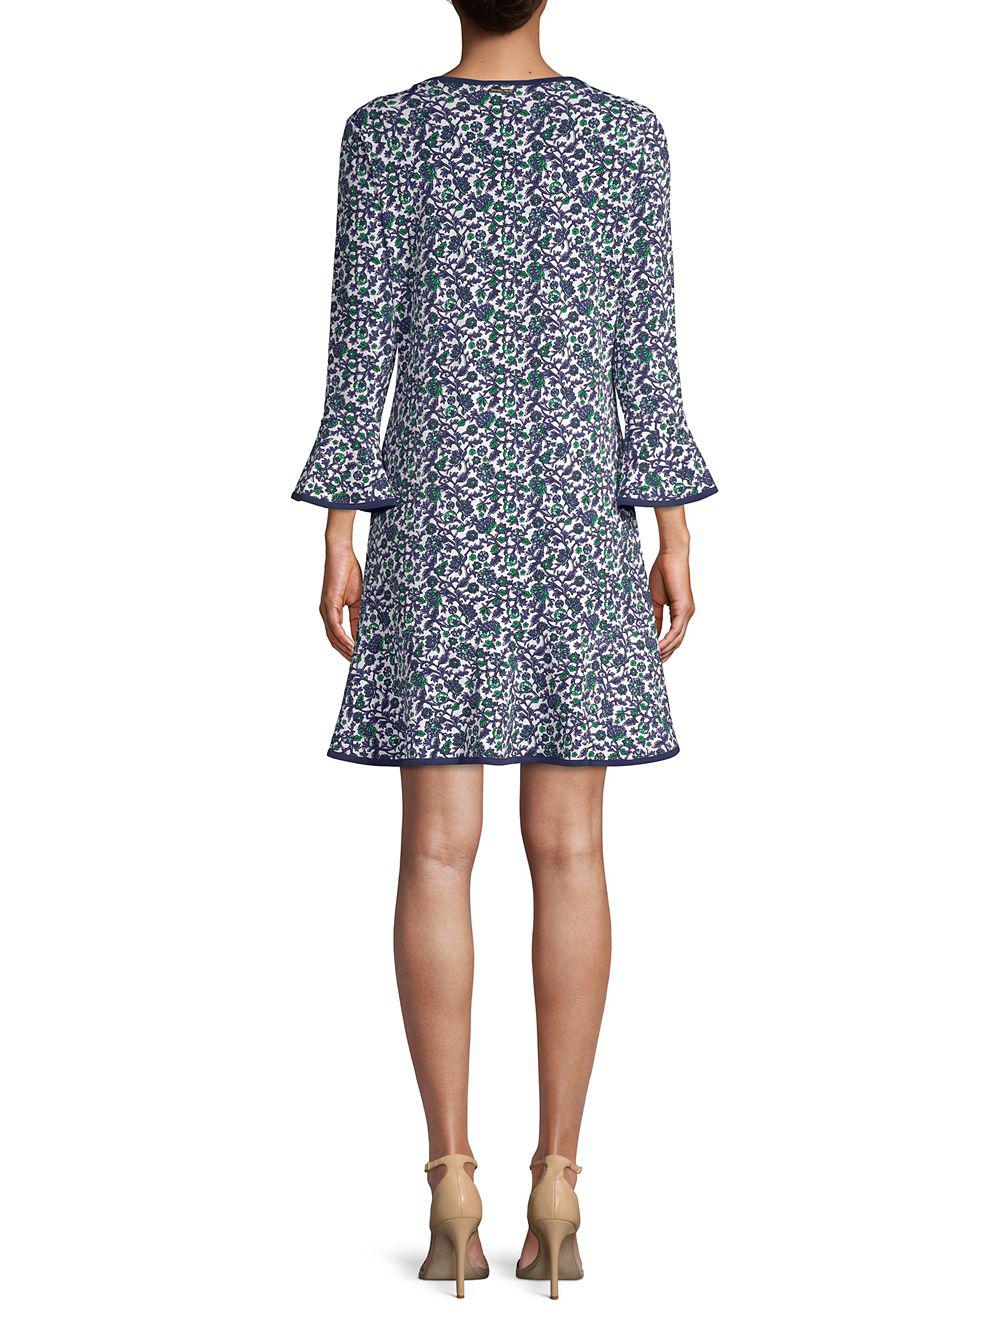 667b5596aaf1f Lyst - Michael Michael Kors Floral Bell-sleeve A-line Dress in Blue